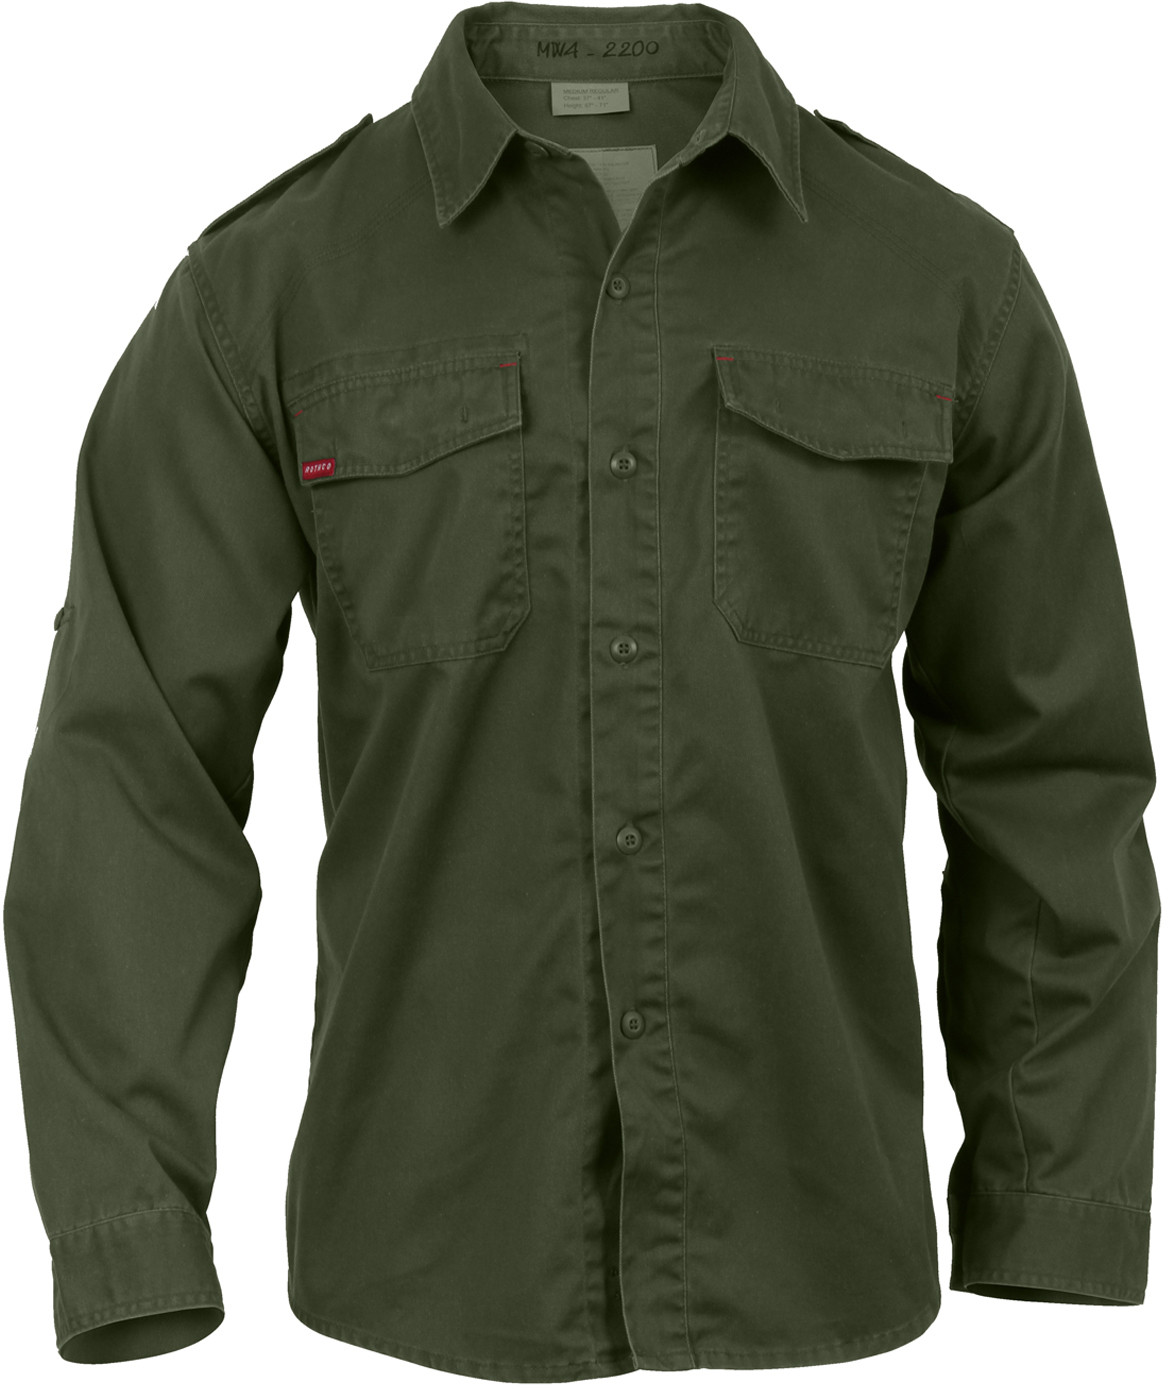 3d00499998c Olive Drab Vintage Style Military BDU Shirt